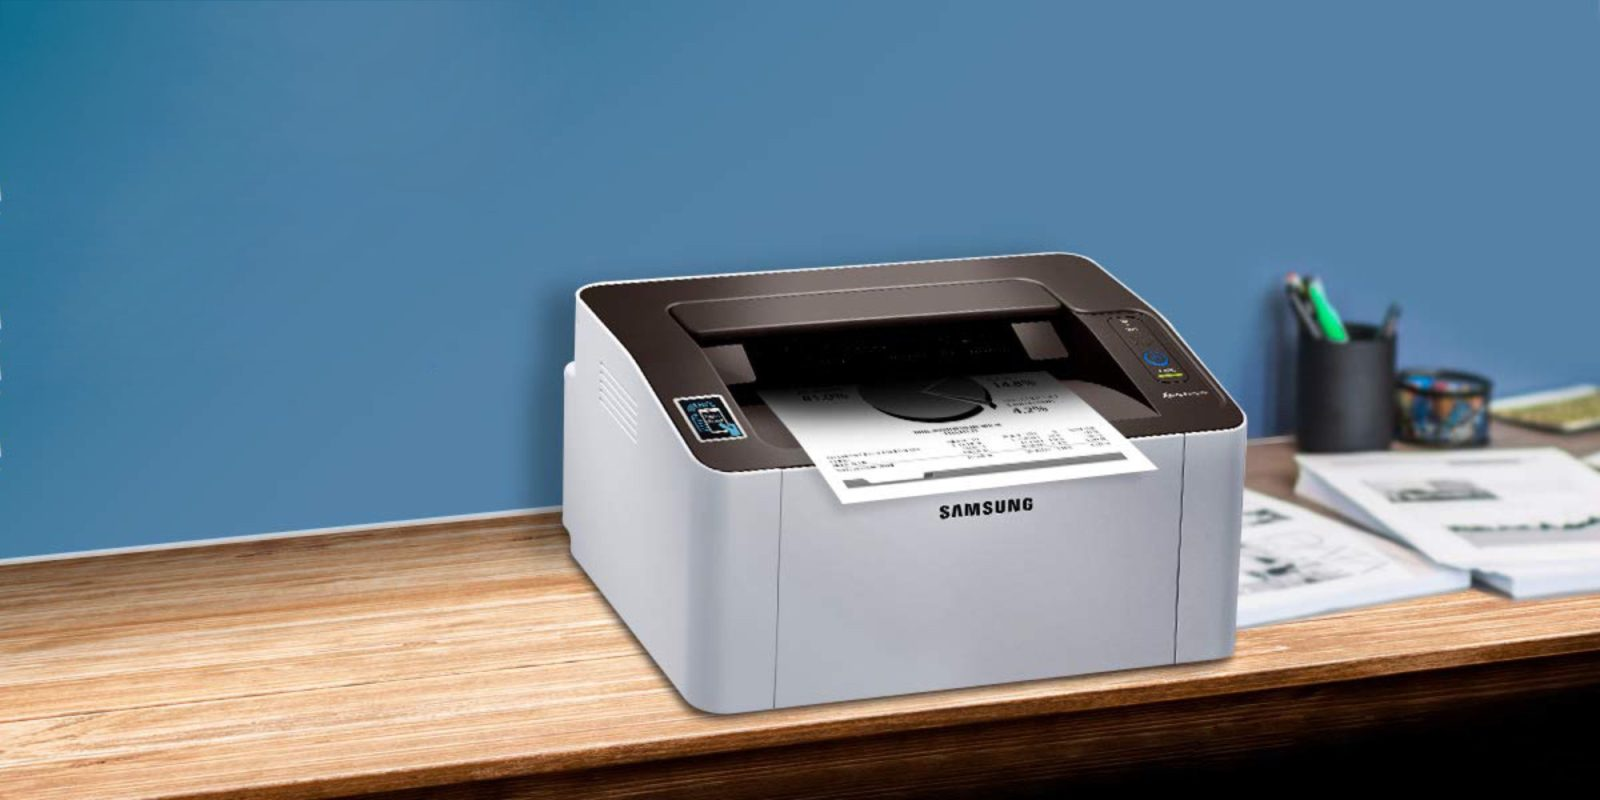 For $45, this Samsung AirPrint Laser Printer is a steal of a deal (Reg. $100)